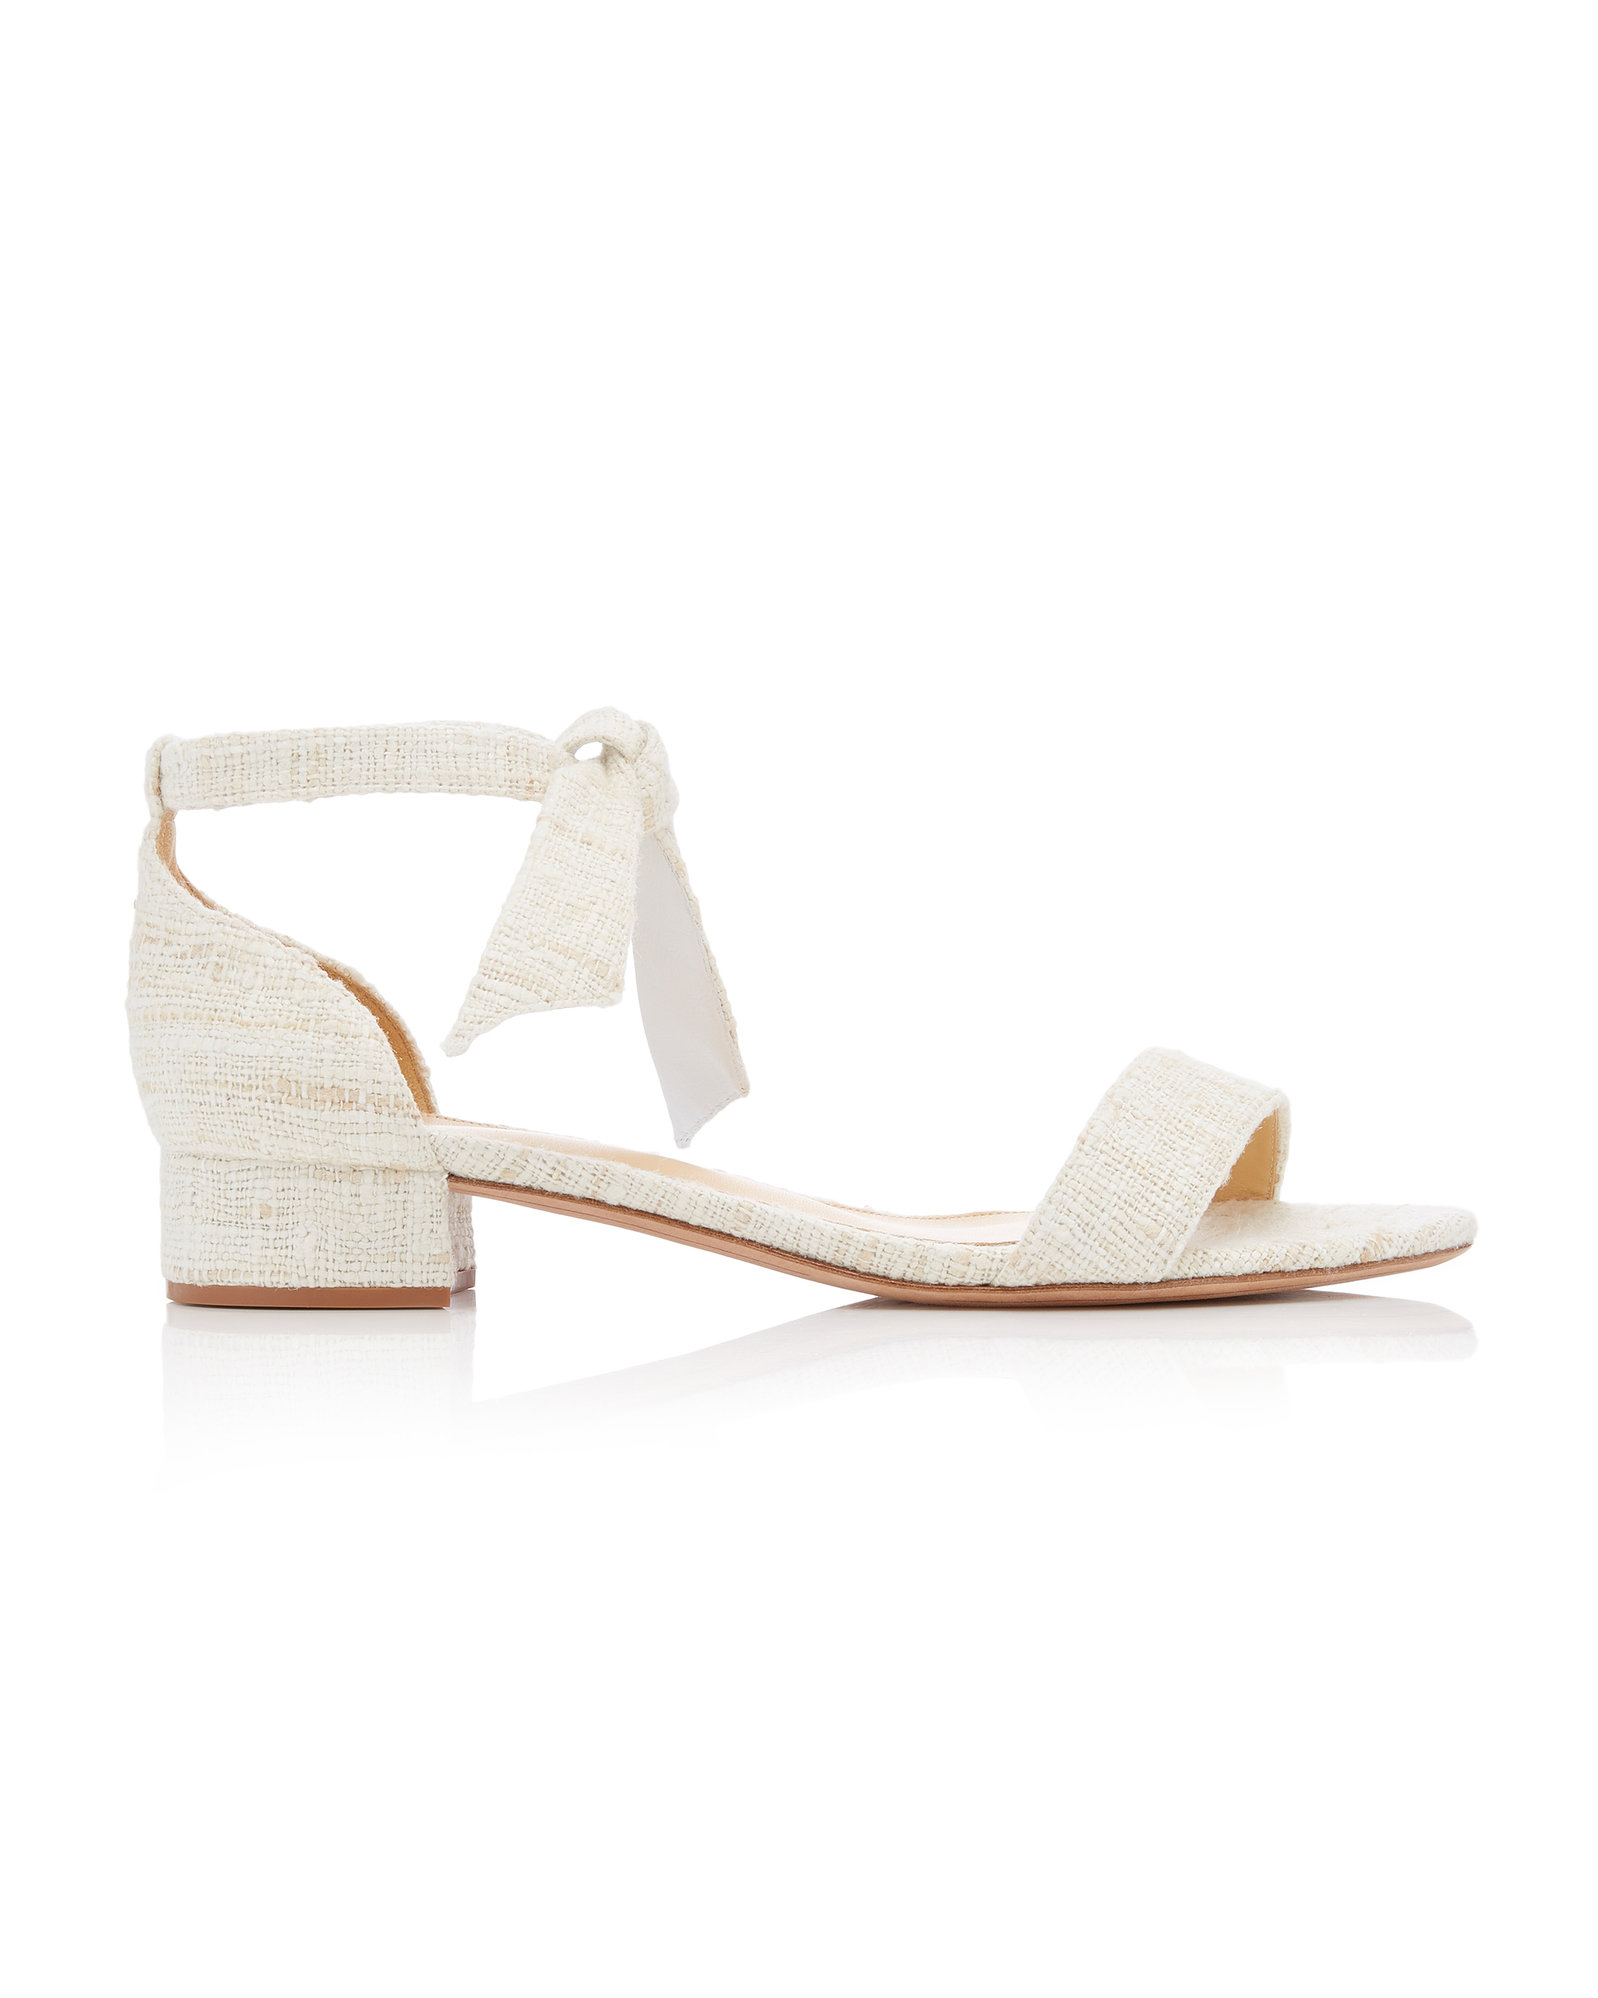 neutral colored linen sandals